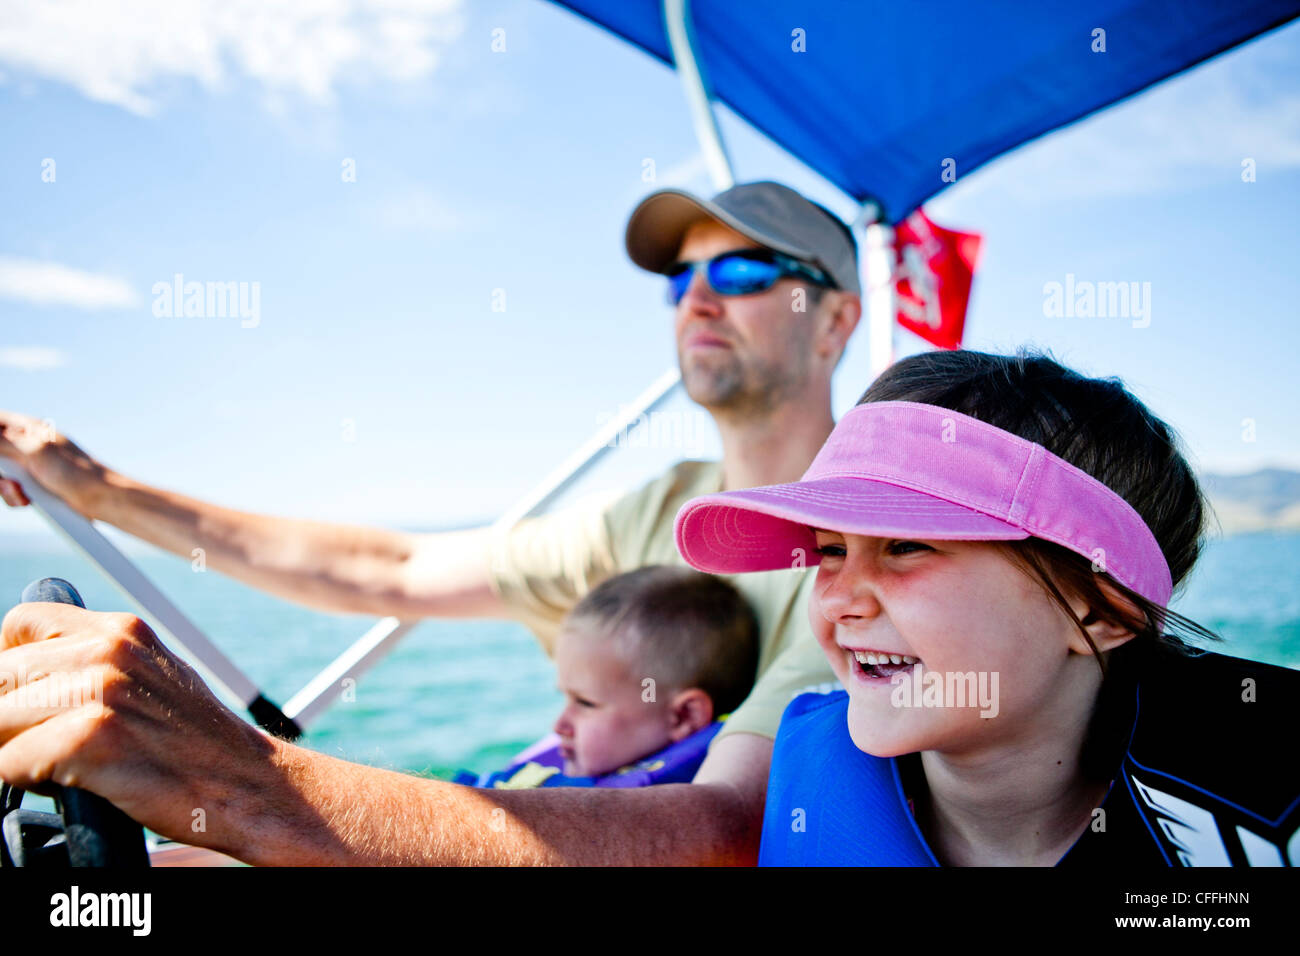 A man pilots a pontoon boat while his three year old son helps steer, and his five year old daughter sits next to - Stock Image